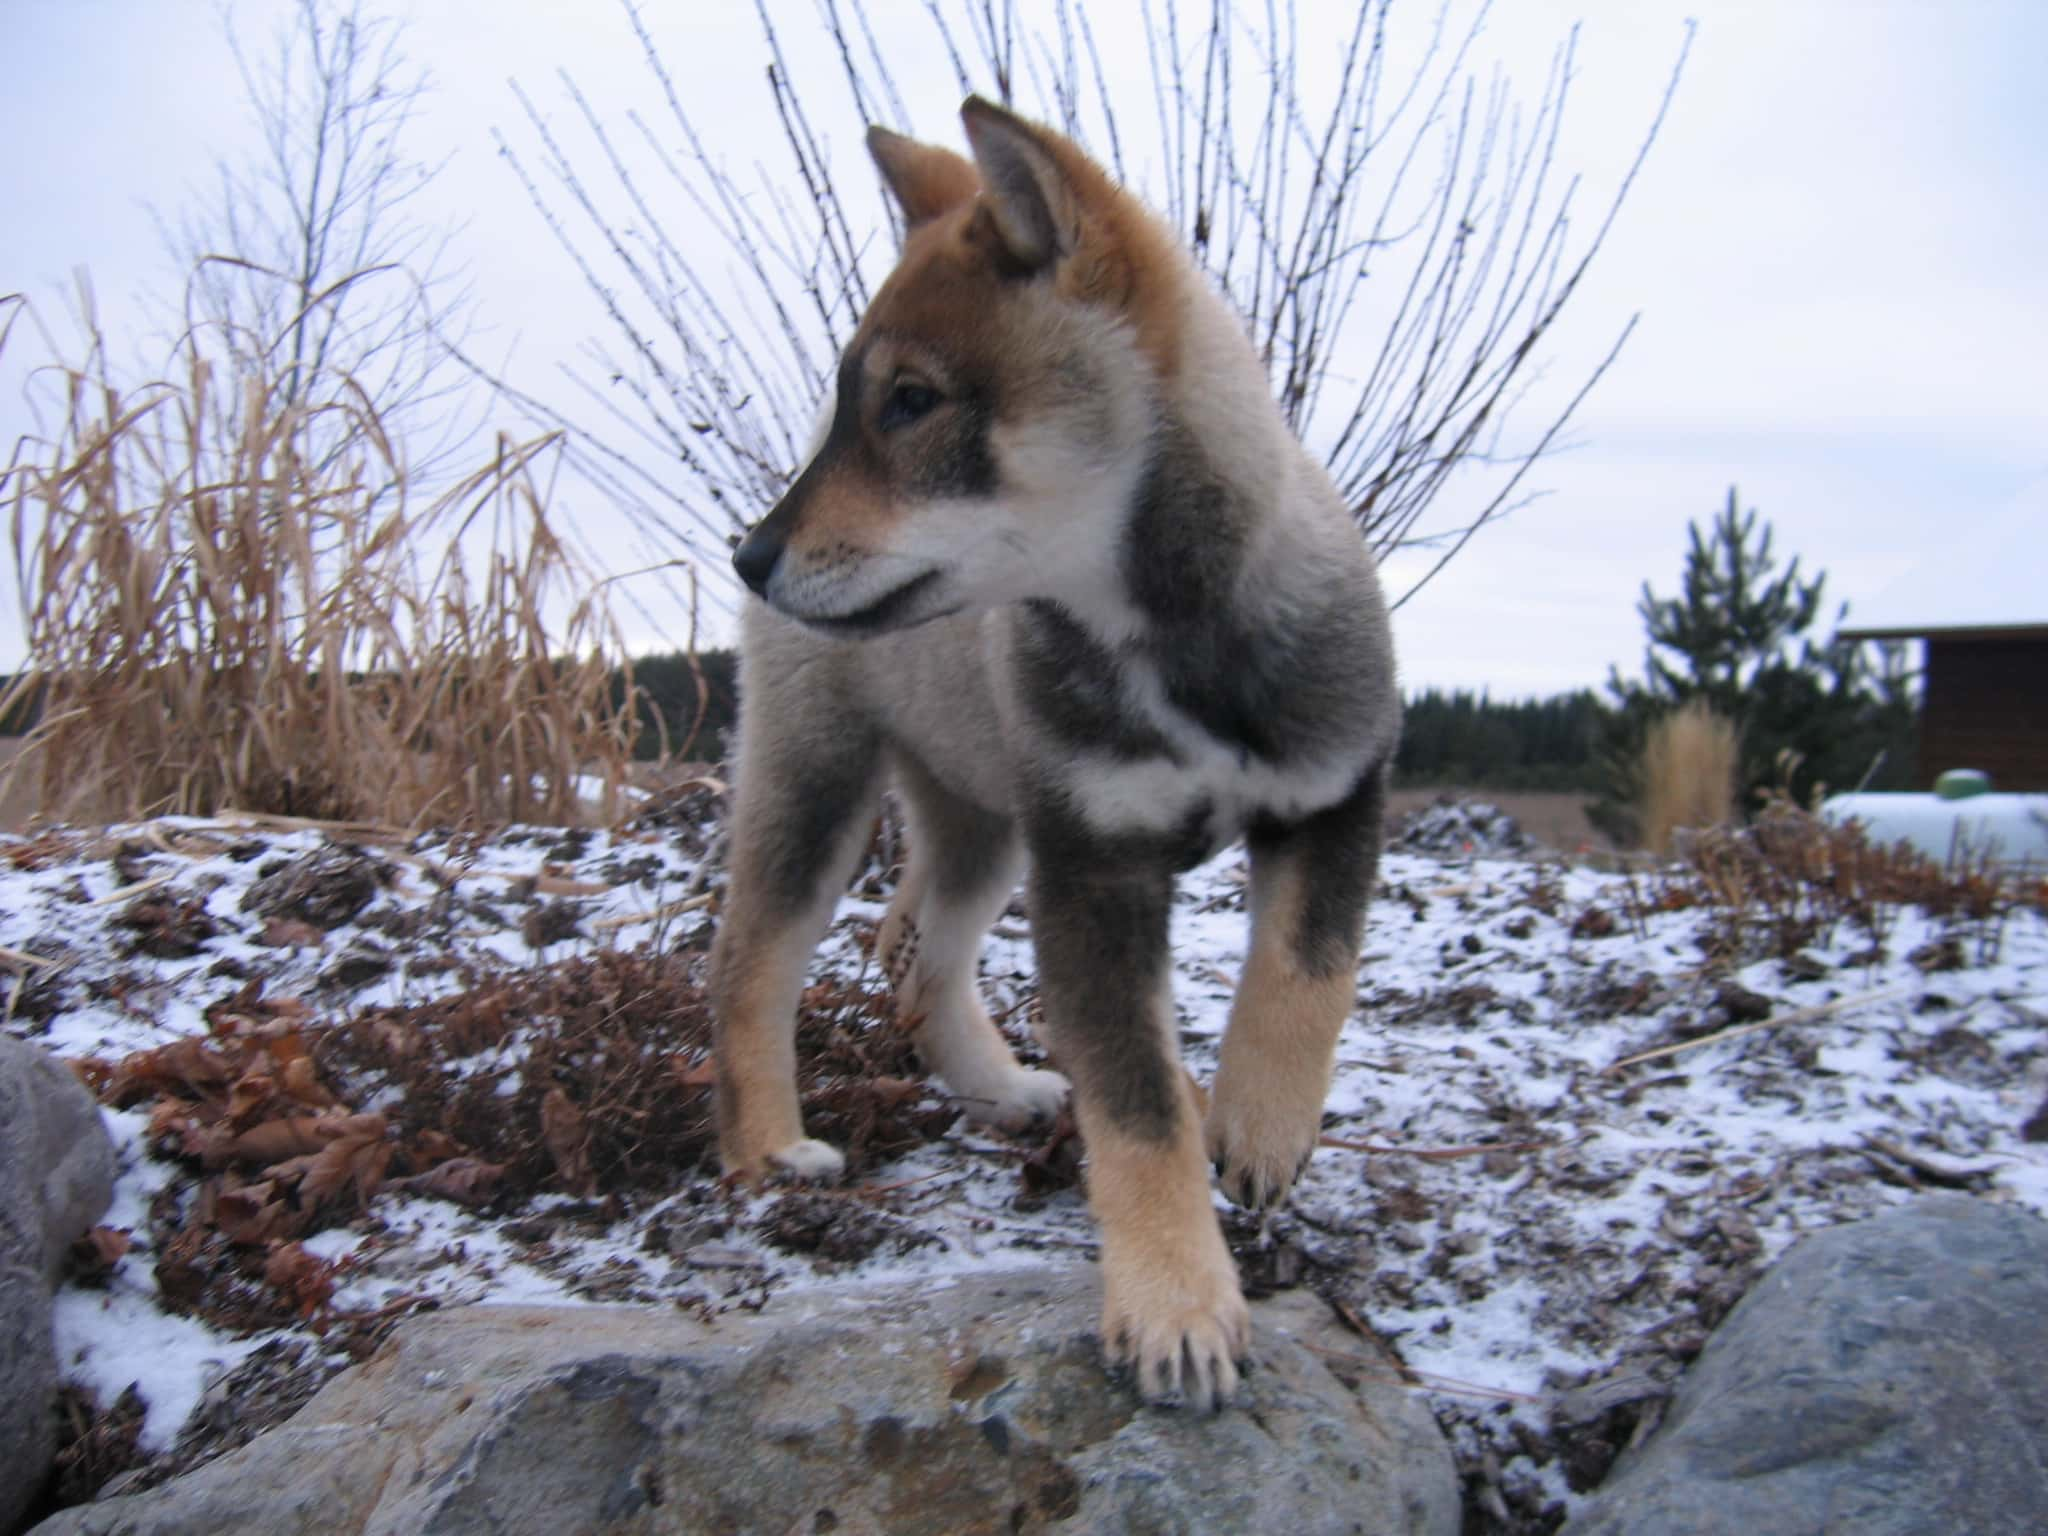 shikoku puppy standing on a rock with snow and tall grass and shrubs